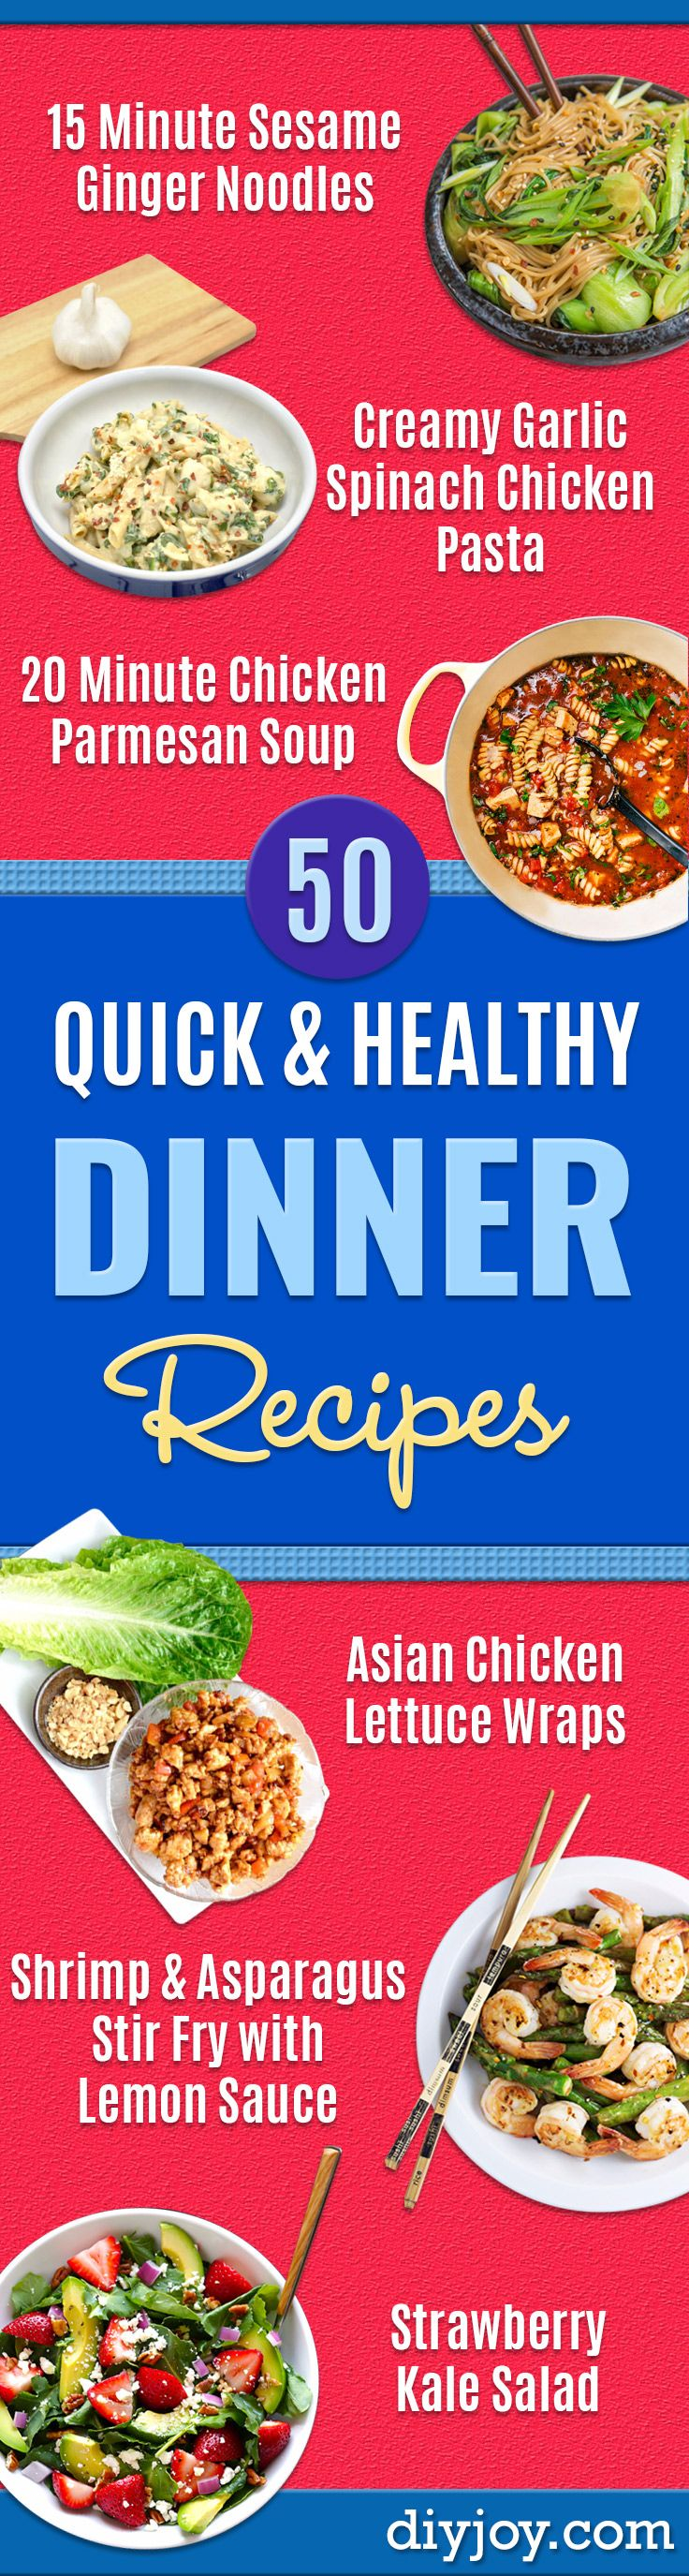 50 Quick And Healthy Dinner Recipes (Easy!)